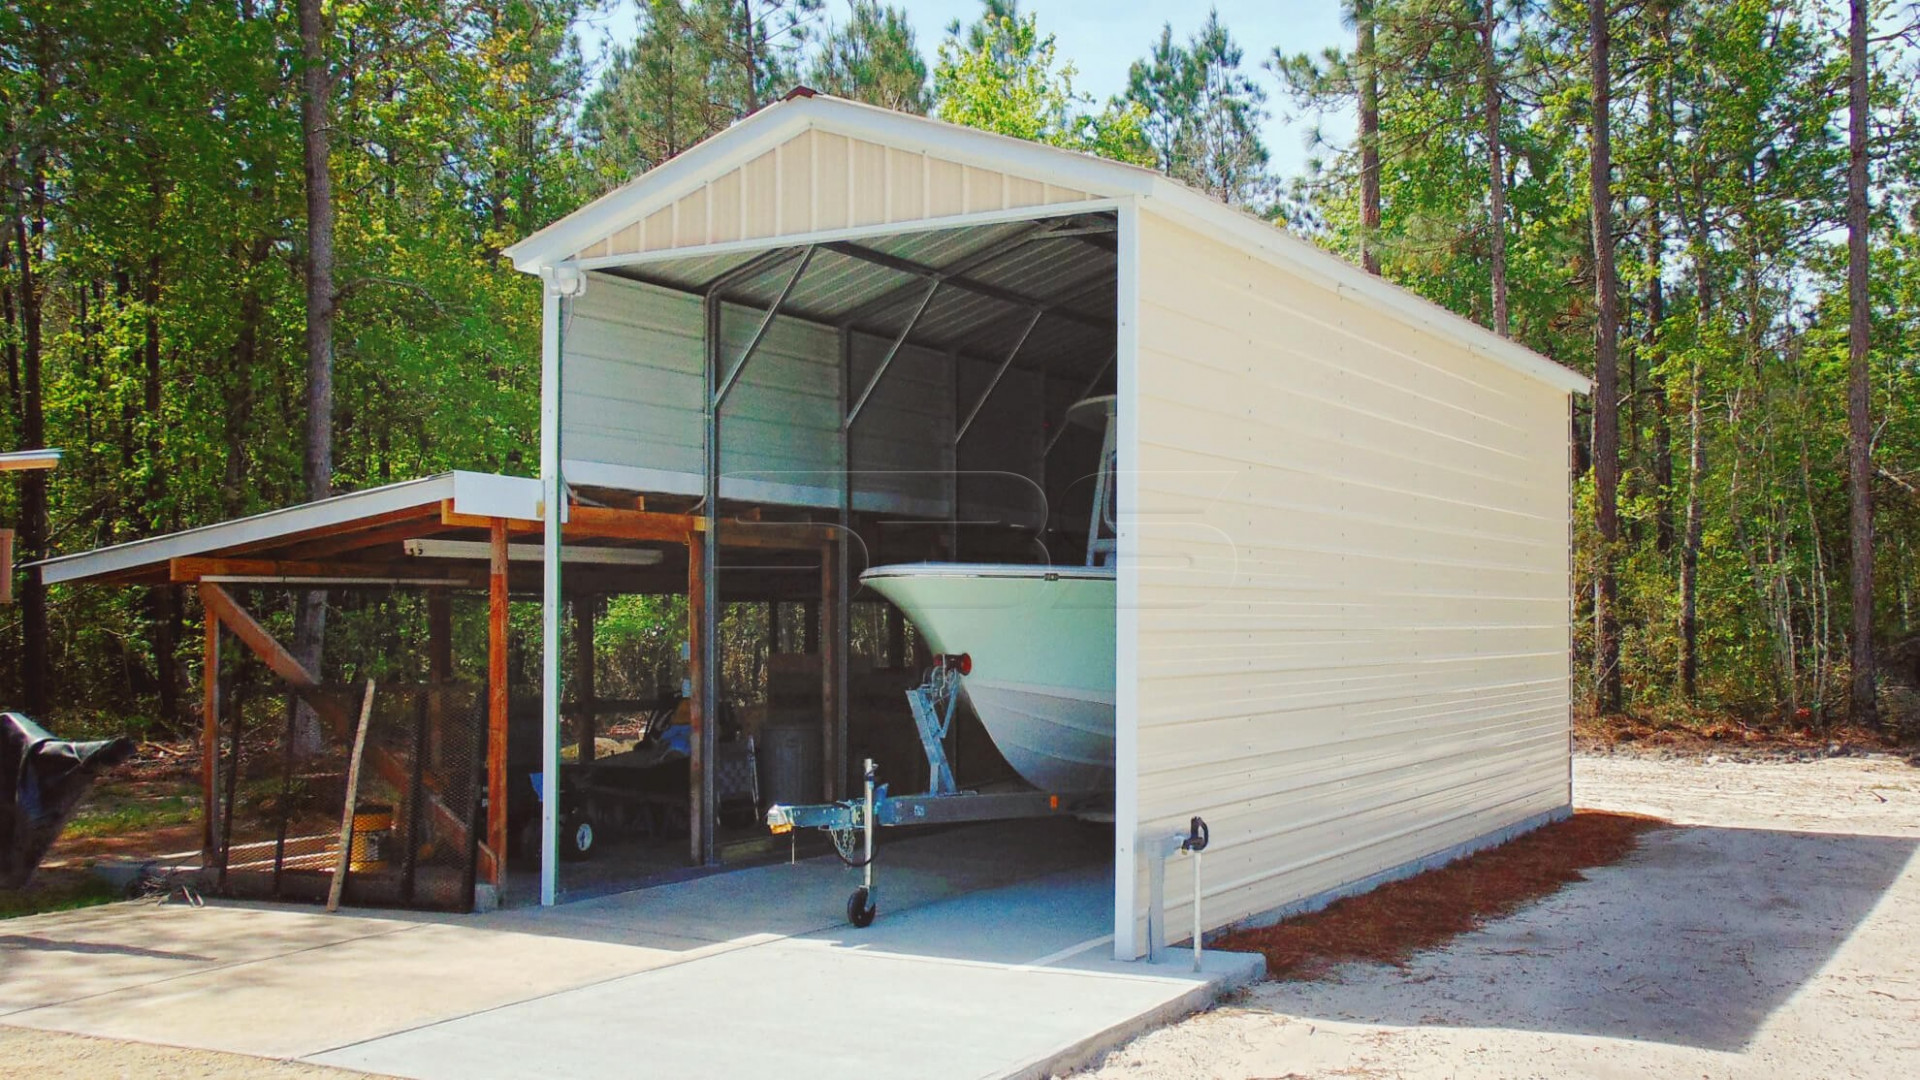 11×11 Metal Boat Carport Carports With Metal Roof